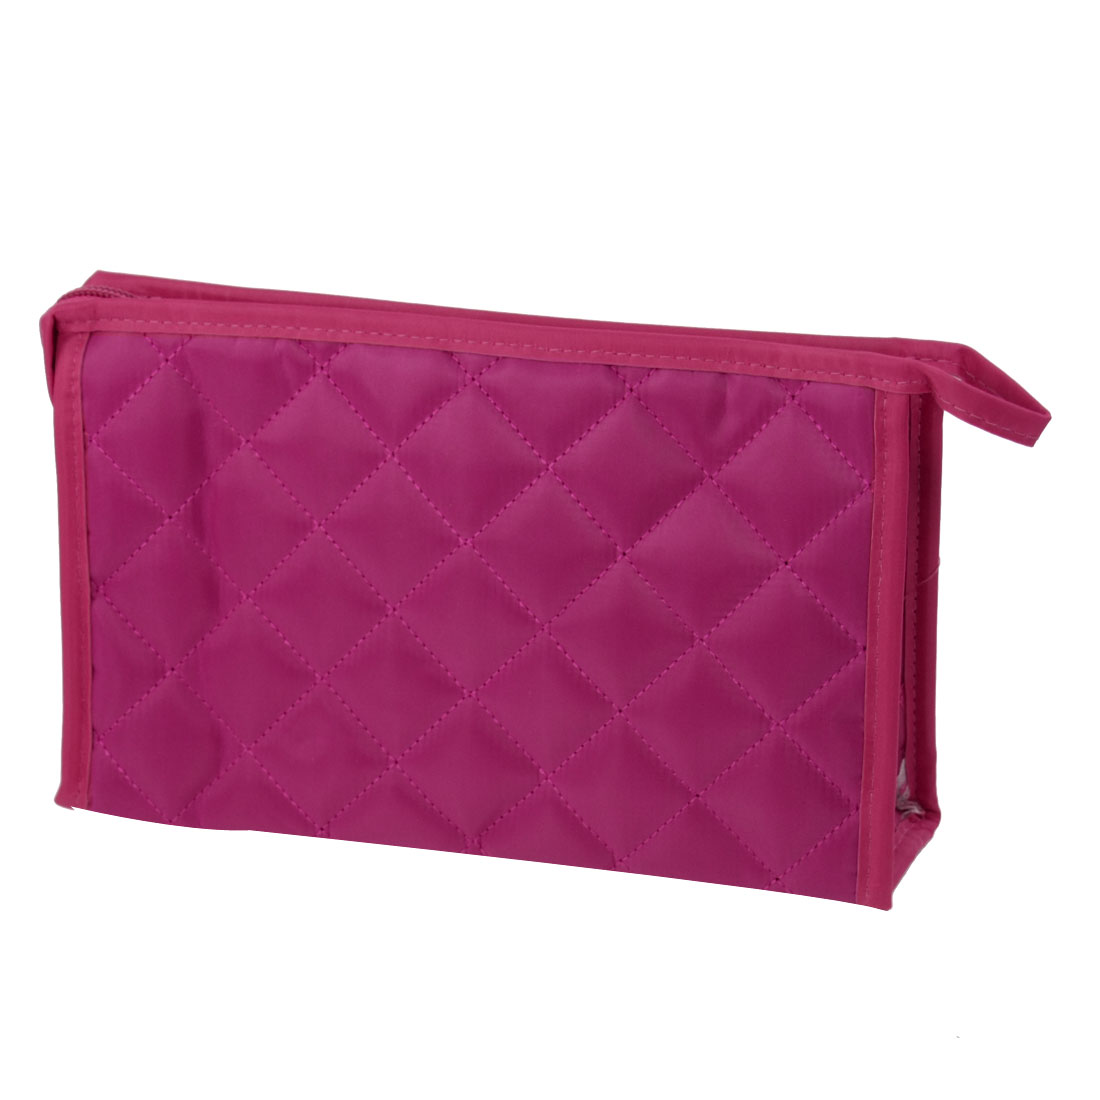 Lady Fuchsia Rhombus Printed Rectangle Shaped Perfume Brushes Pouch Makeup Bag